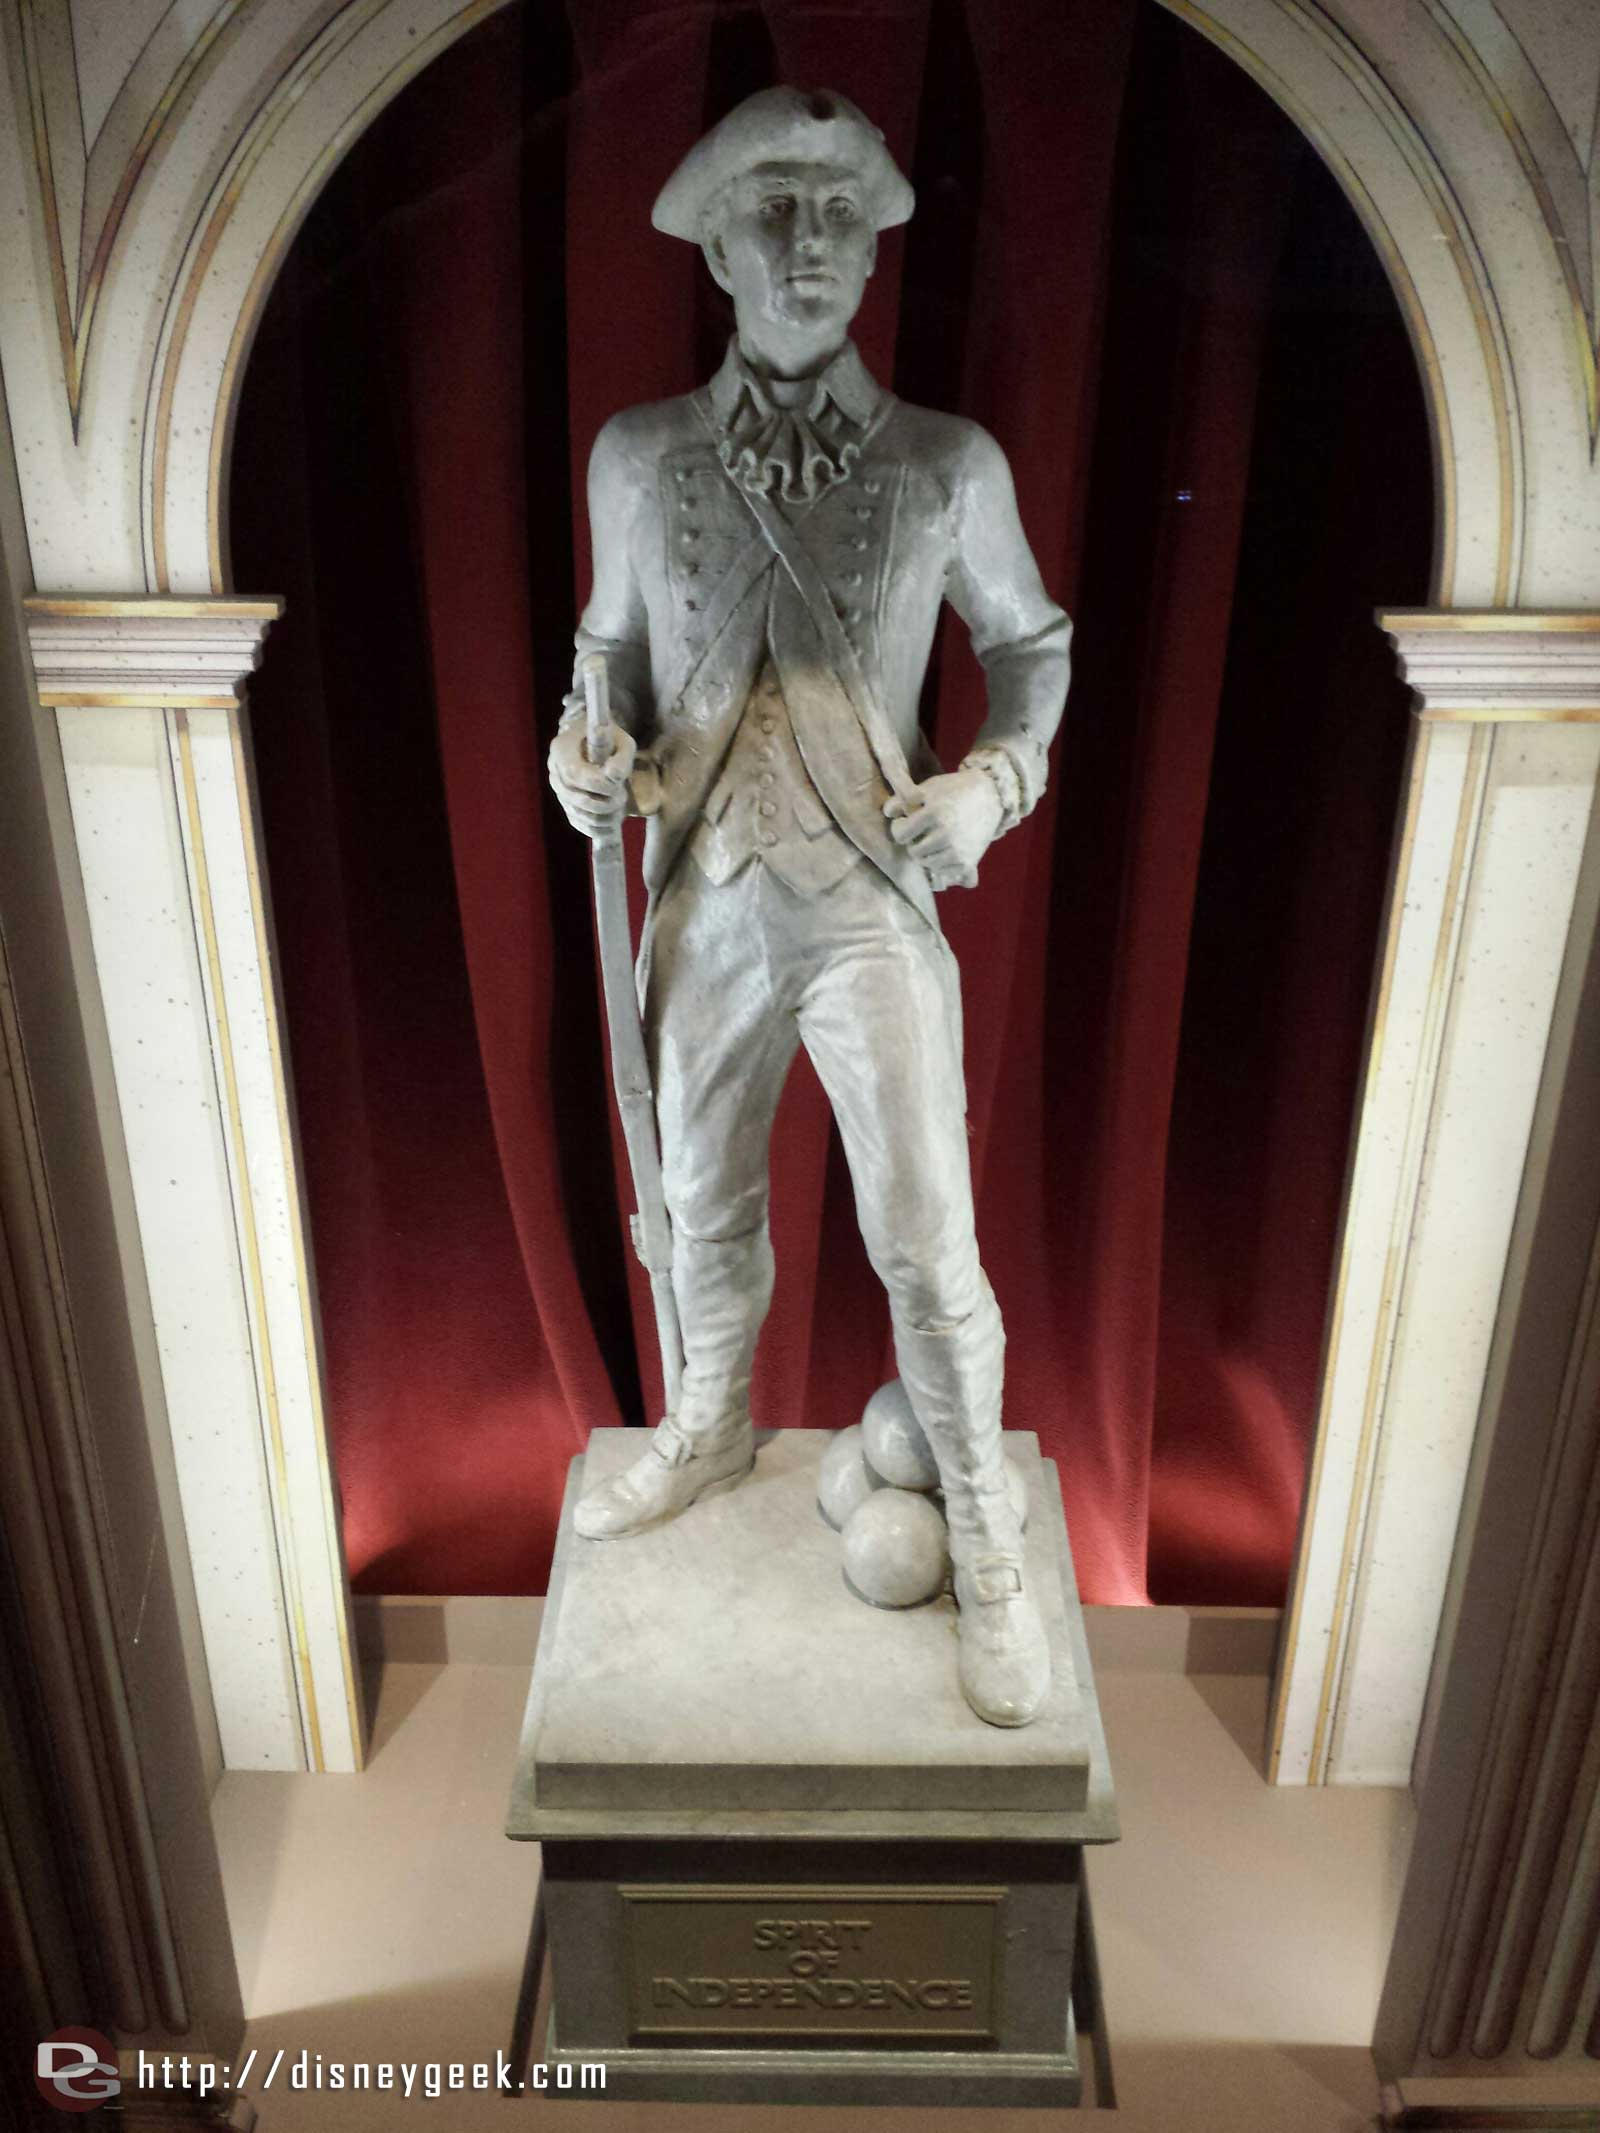 The Spirit of Independence in the Great Moments with Mr. Lincoln lobby #Disneyland